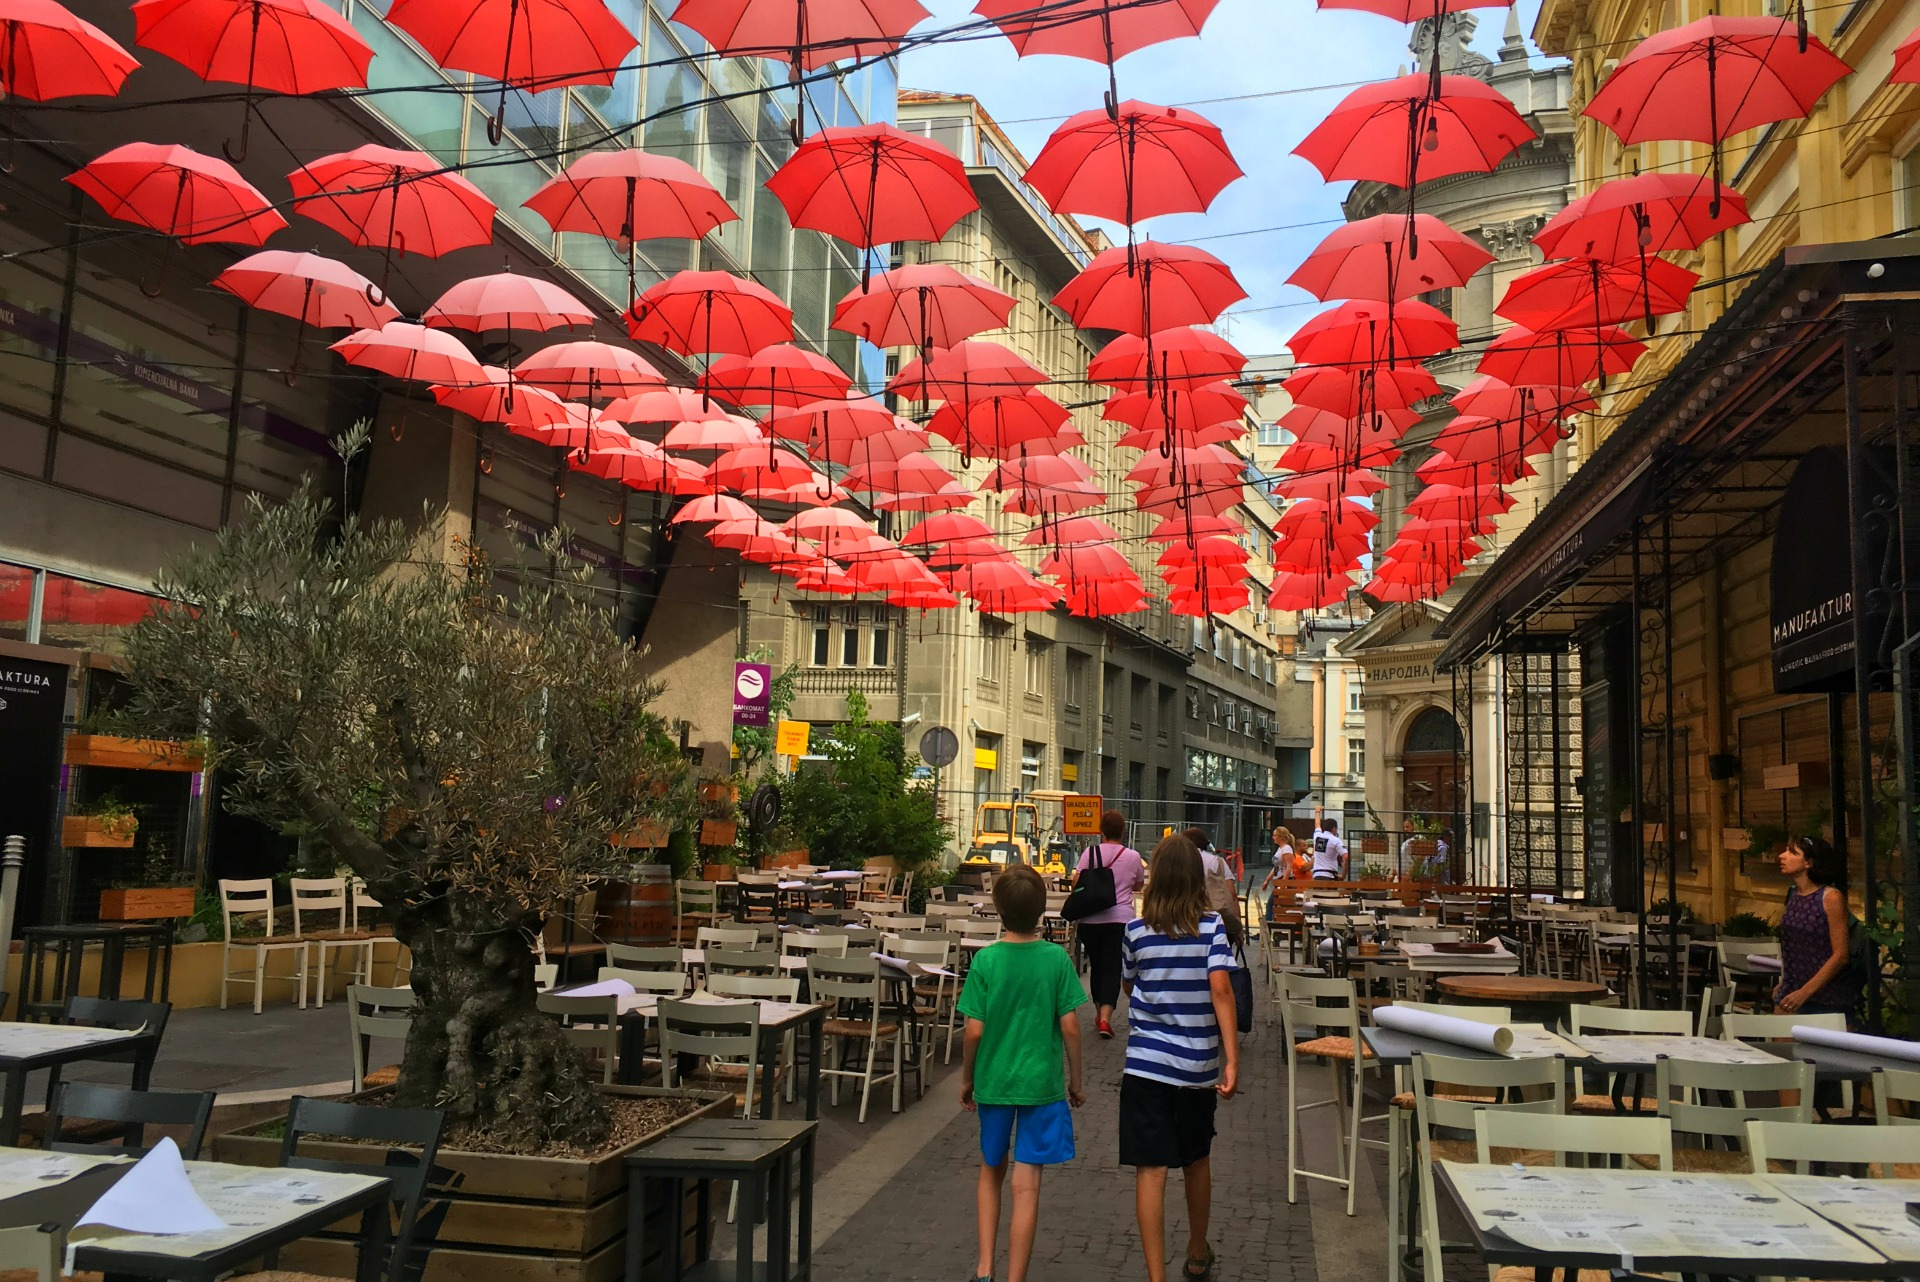 Umbrella shade in Belgrade, Serbia